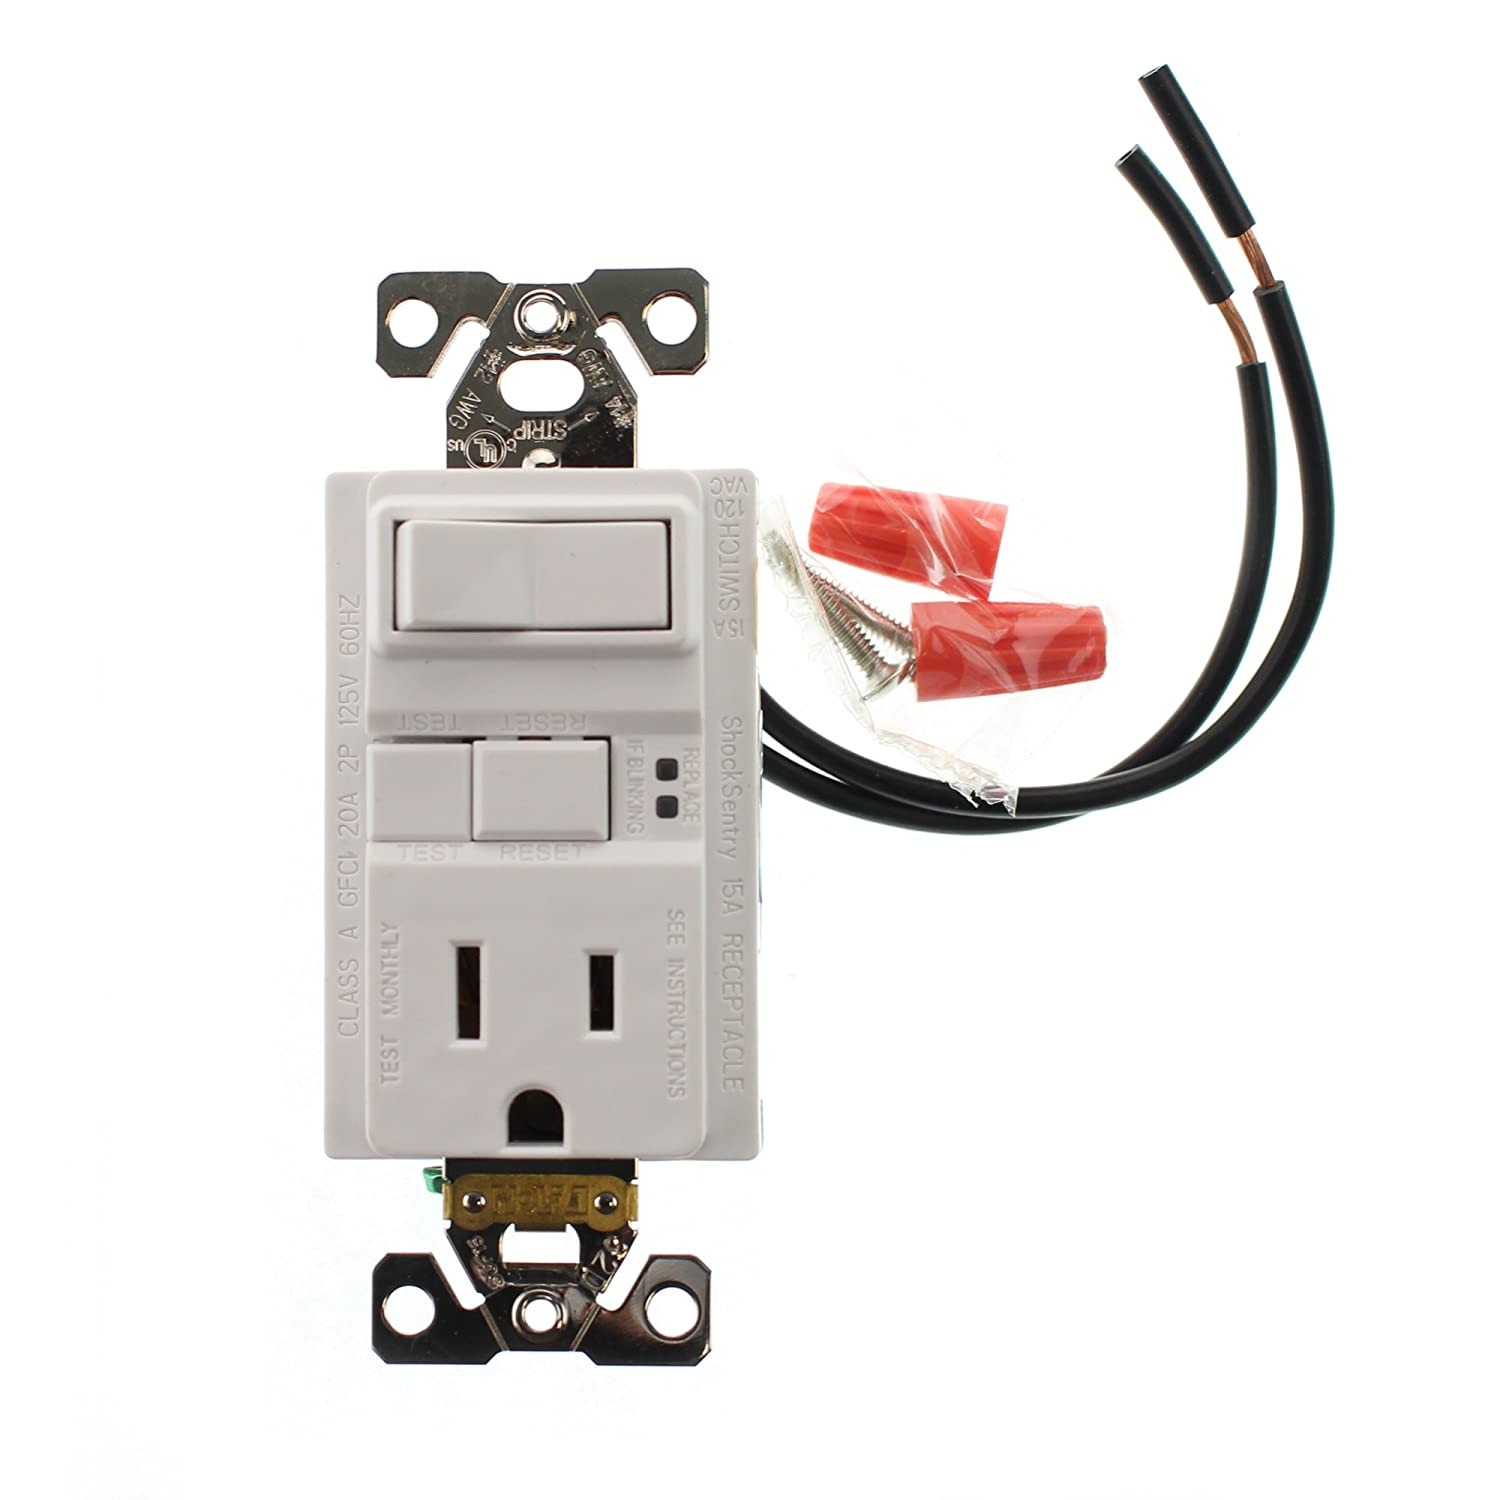 Hubbell Gfspst15wz Combo Gfci Outlet 1p Switch Self Test 15 Amp Ivory Electrical Outlets Light Switches 15a Gfi 120 Volt White